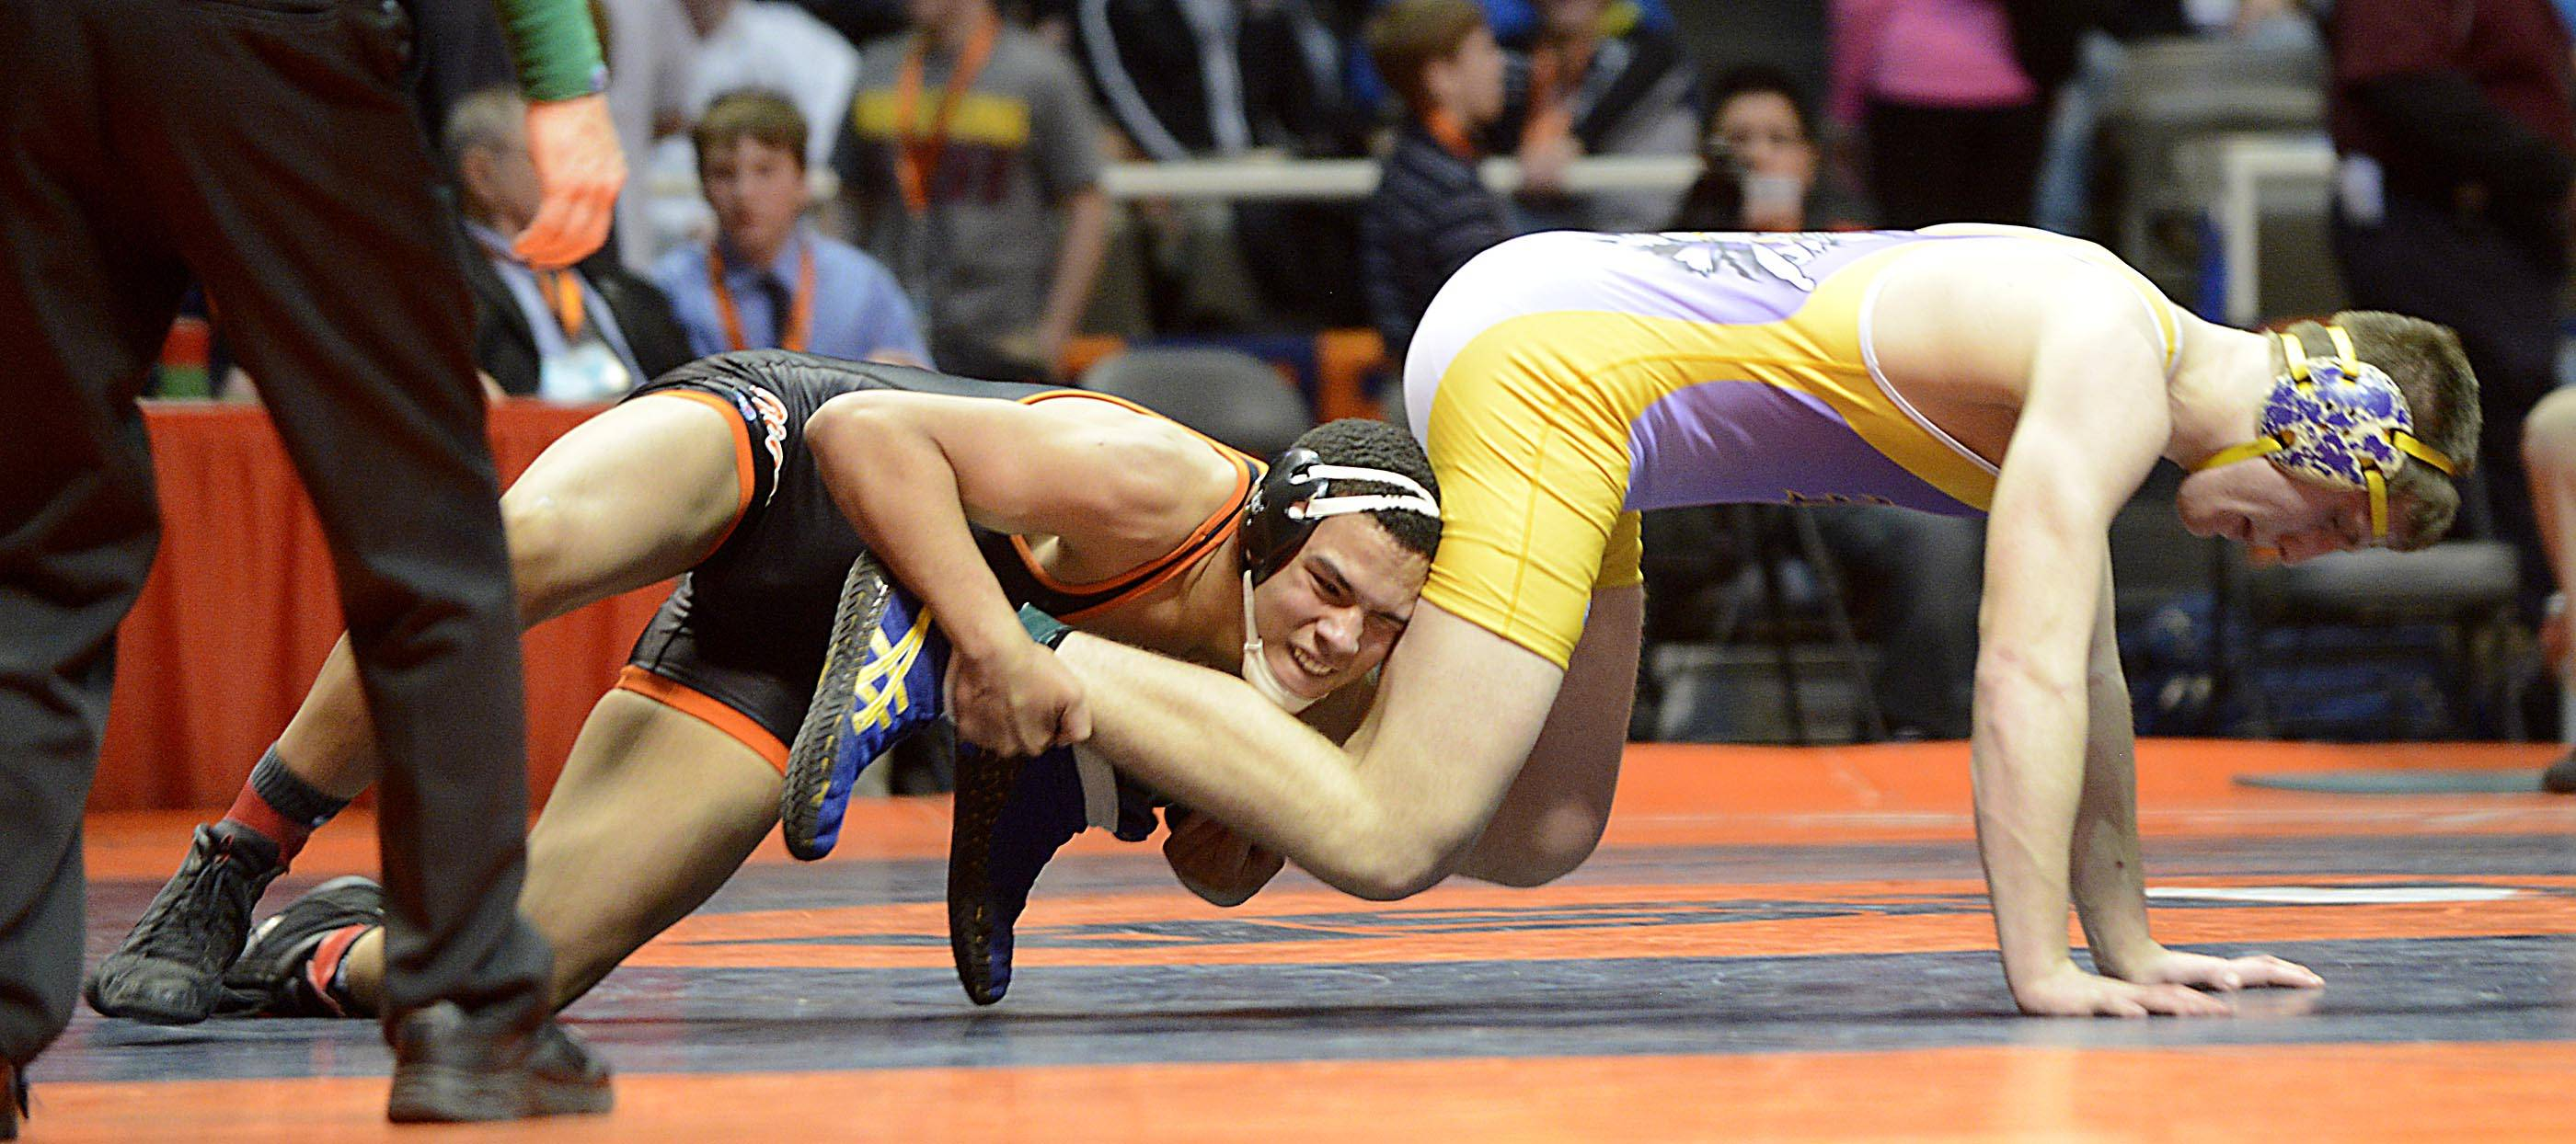 Nate Magiera of Wauconda, right, competes against Romeo McKnight of Crystal Lake Central at 220 pounds Friday in Champaign.